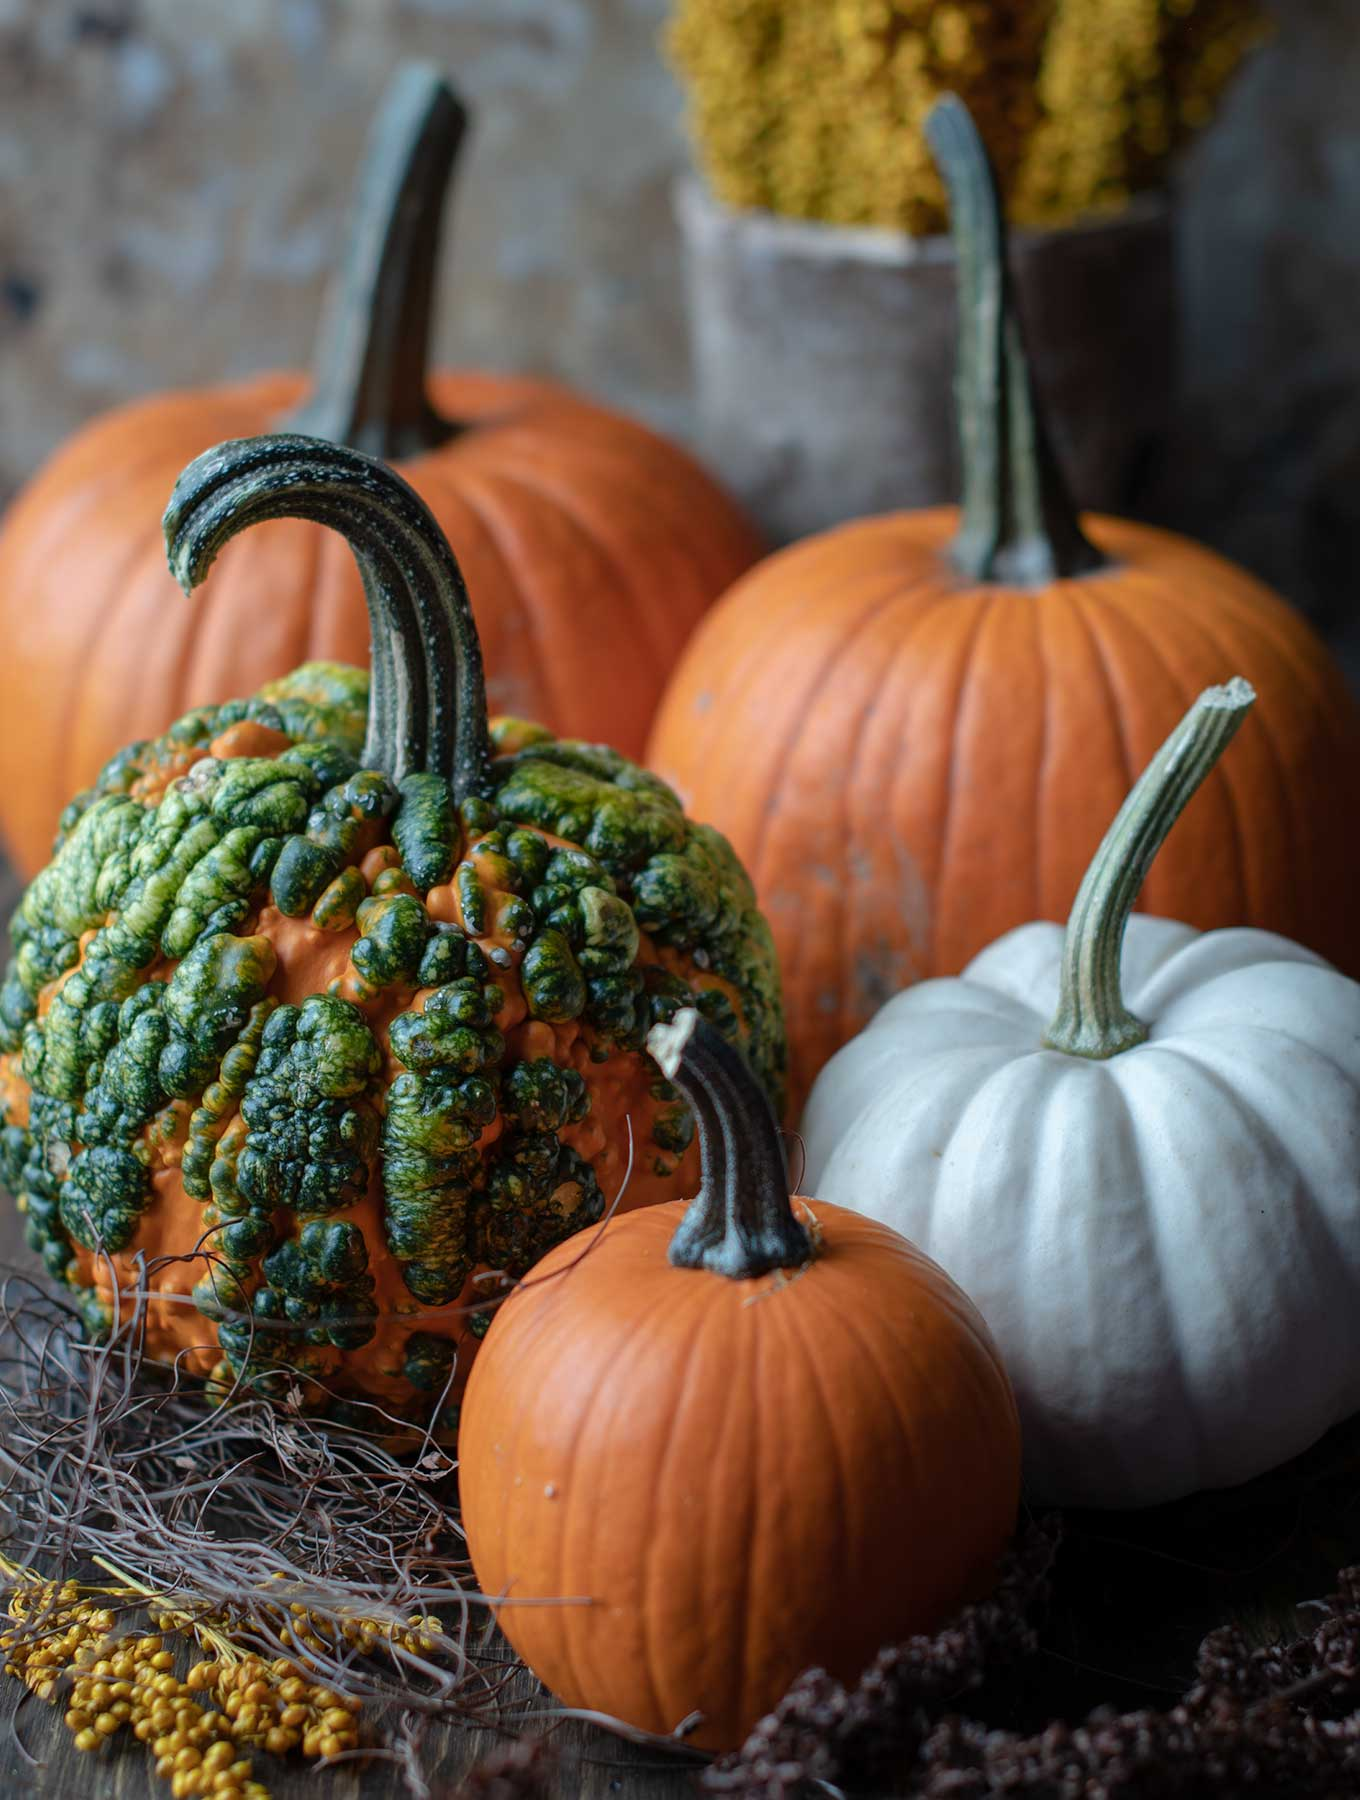 Assortment of fall pumpkins